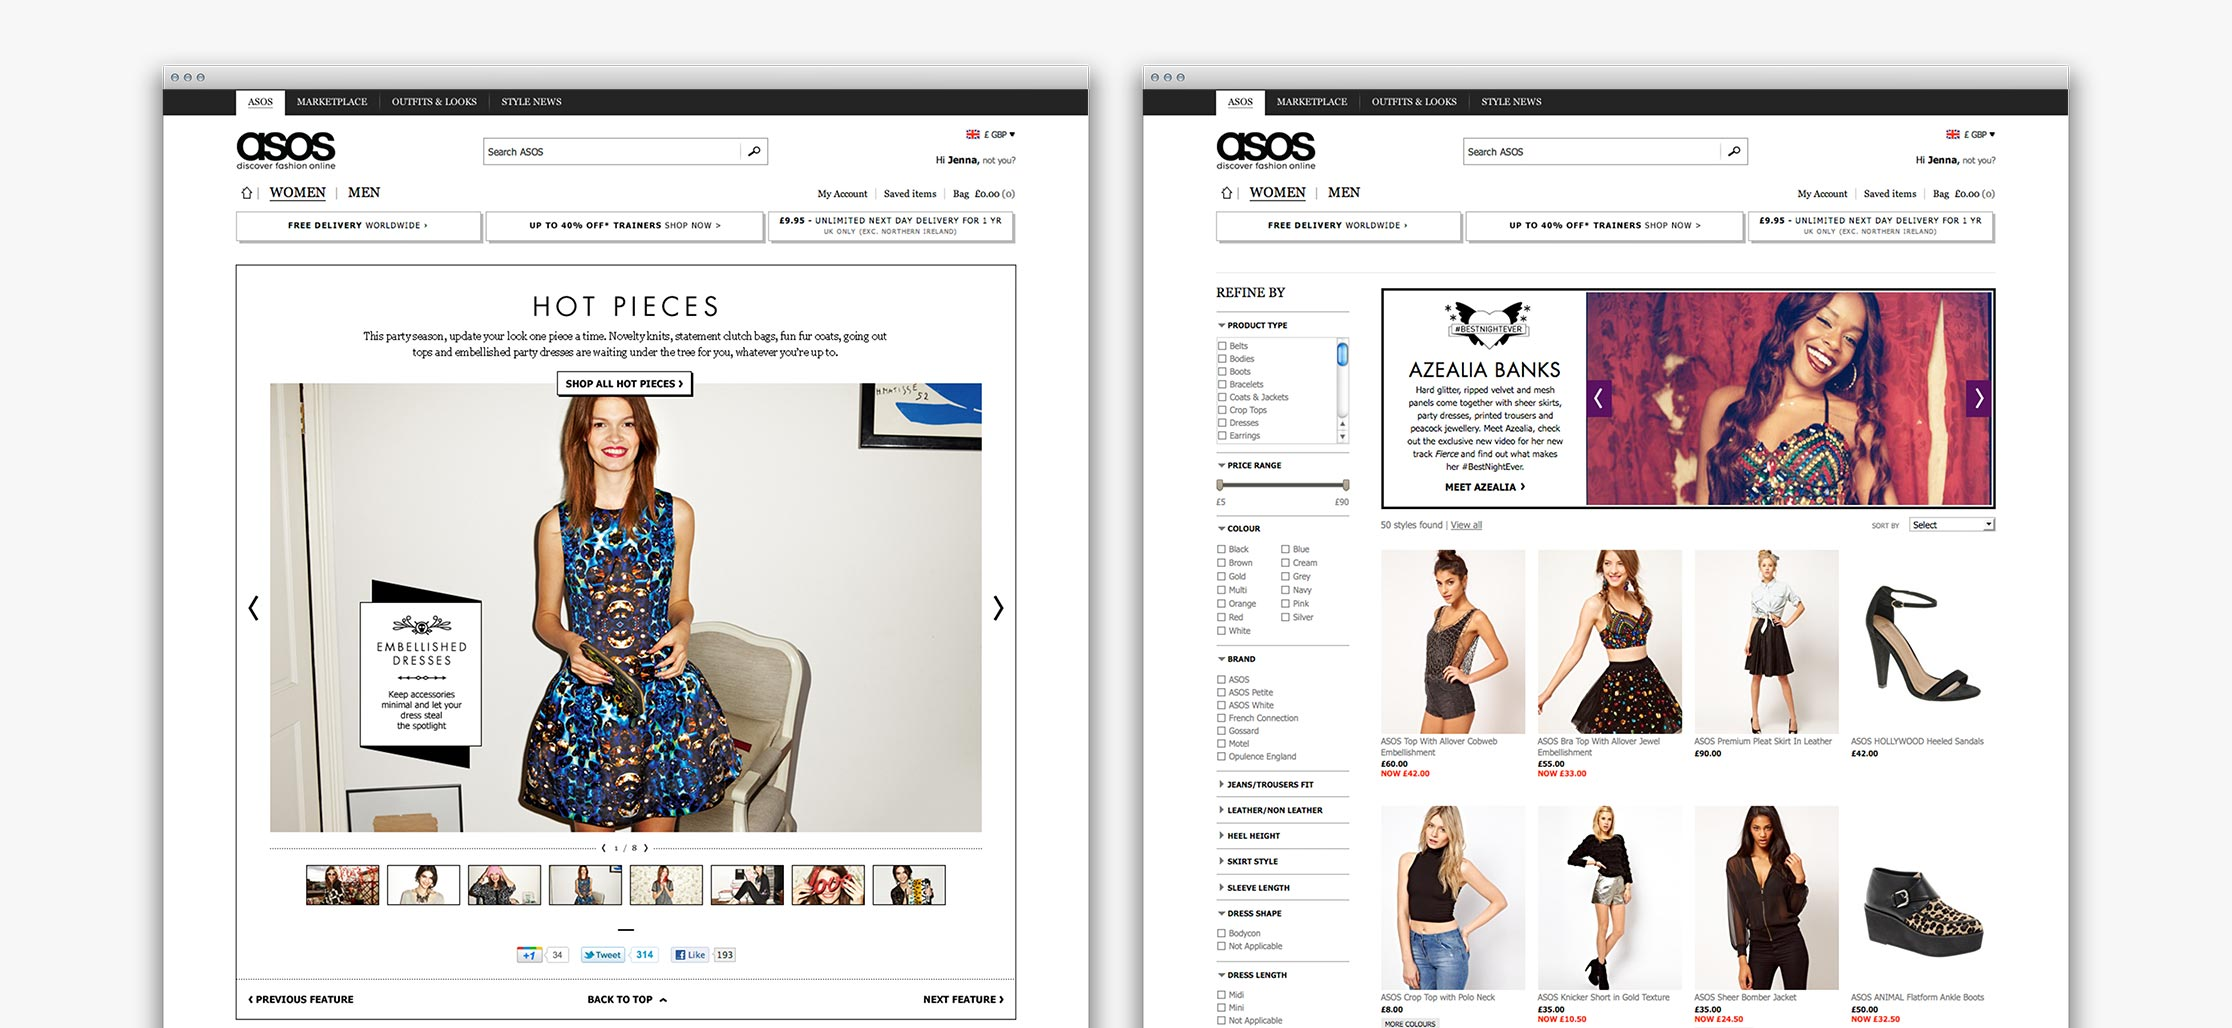 ASOS Womenswear #BestNightEver inspirational content on retail pages